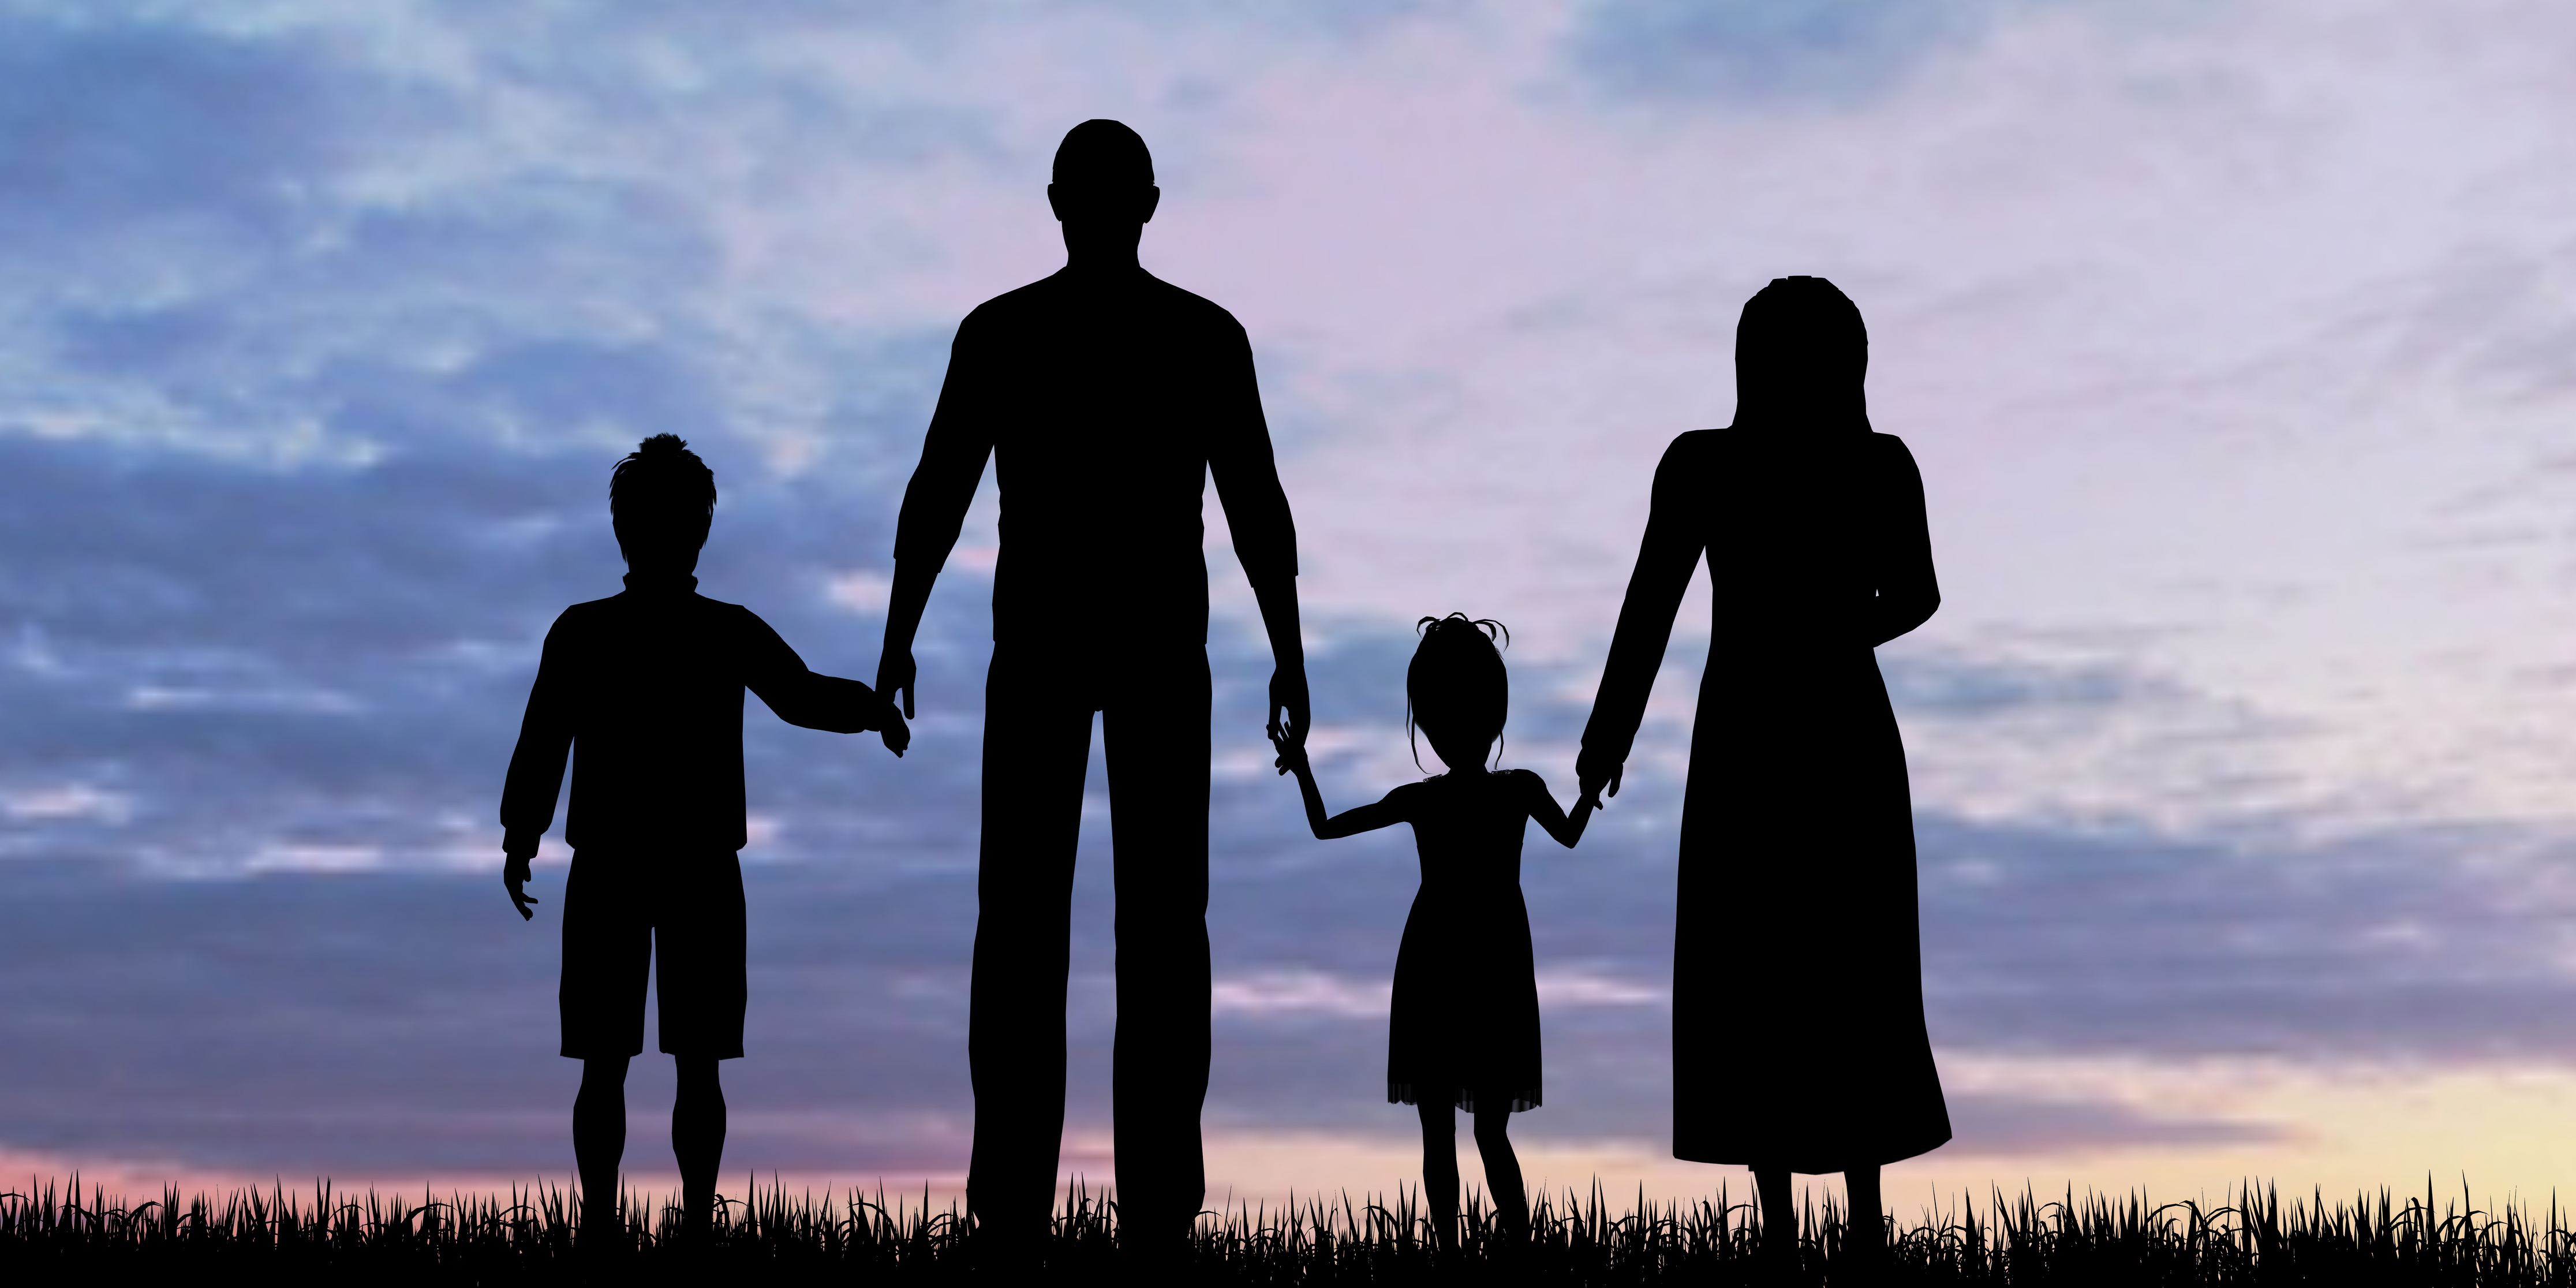 A family standing in silhouette against a sunset